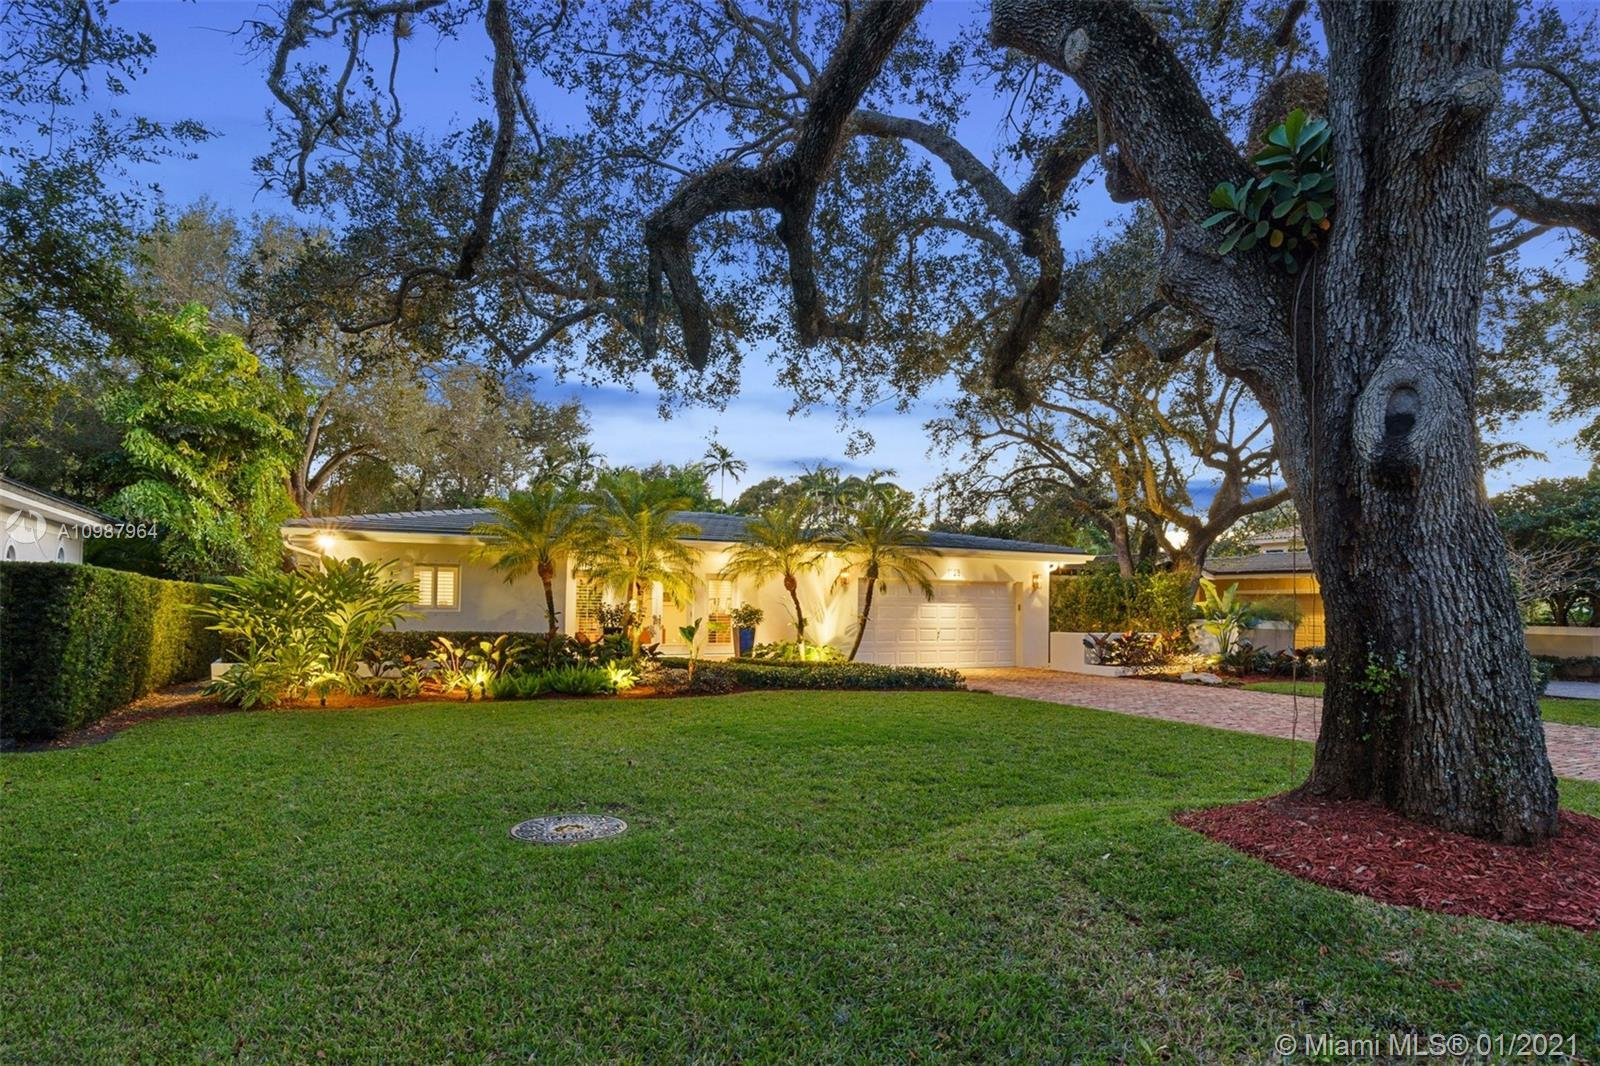 Immaculate one story pool home centrally located in one of the most desirable streets in Coral Gable